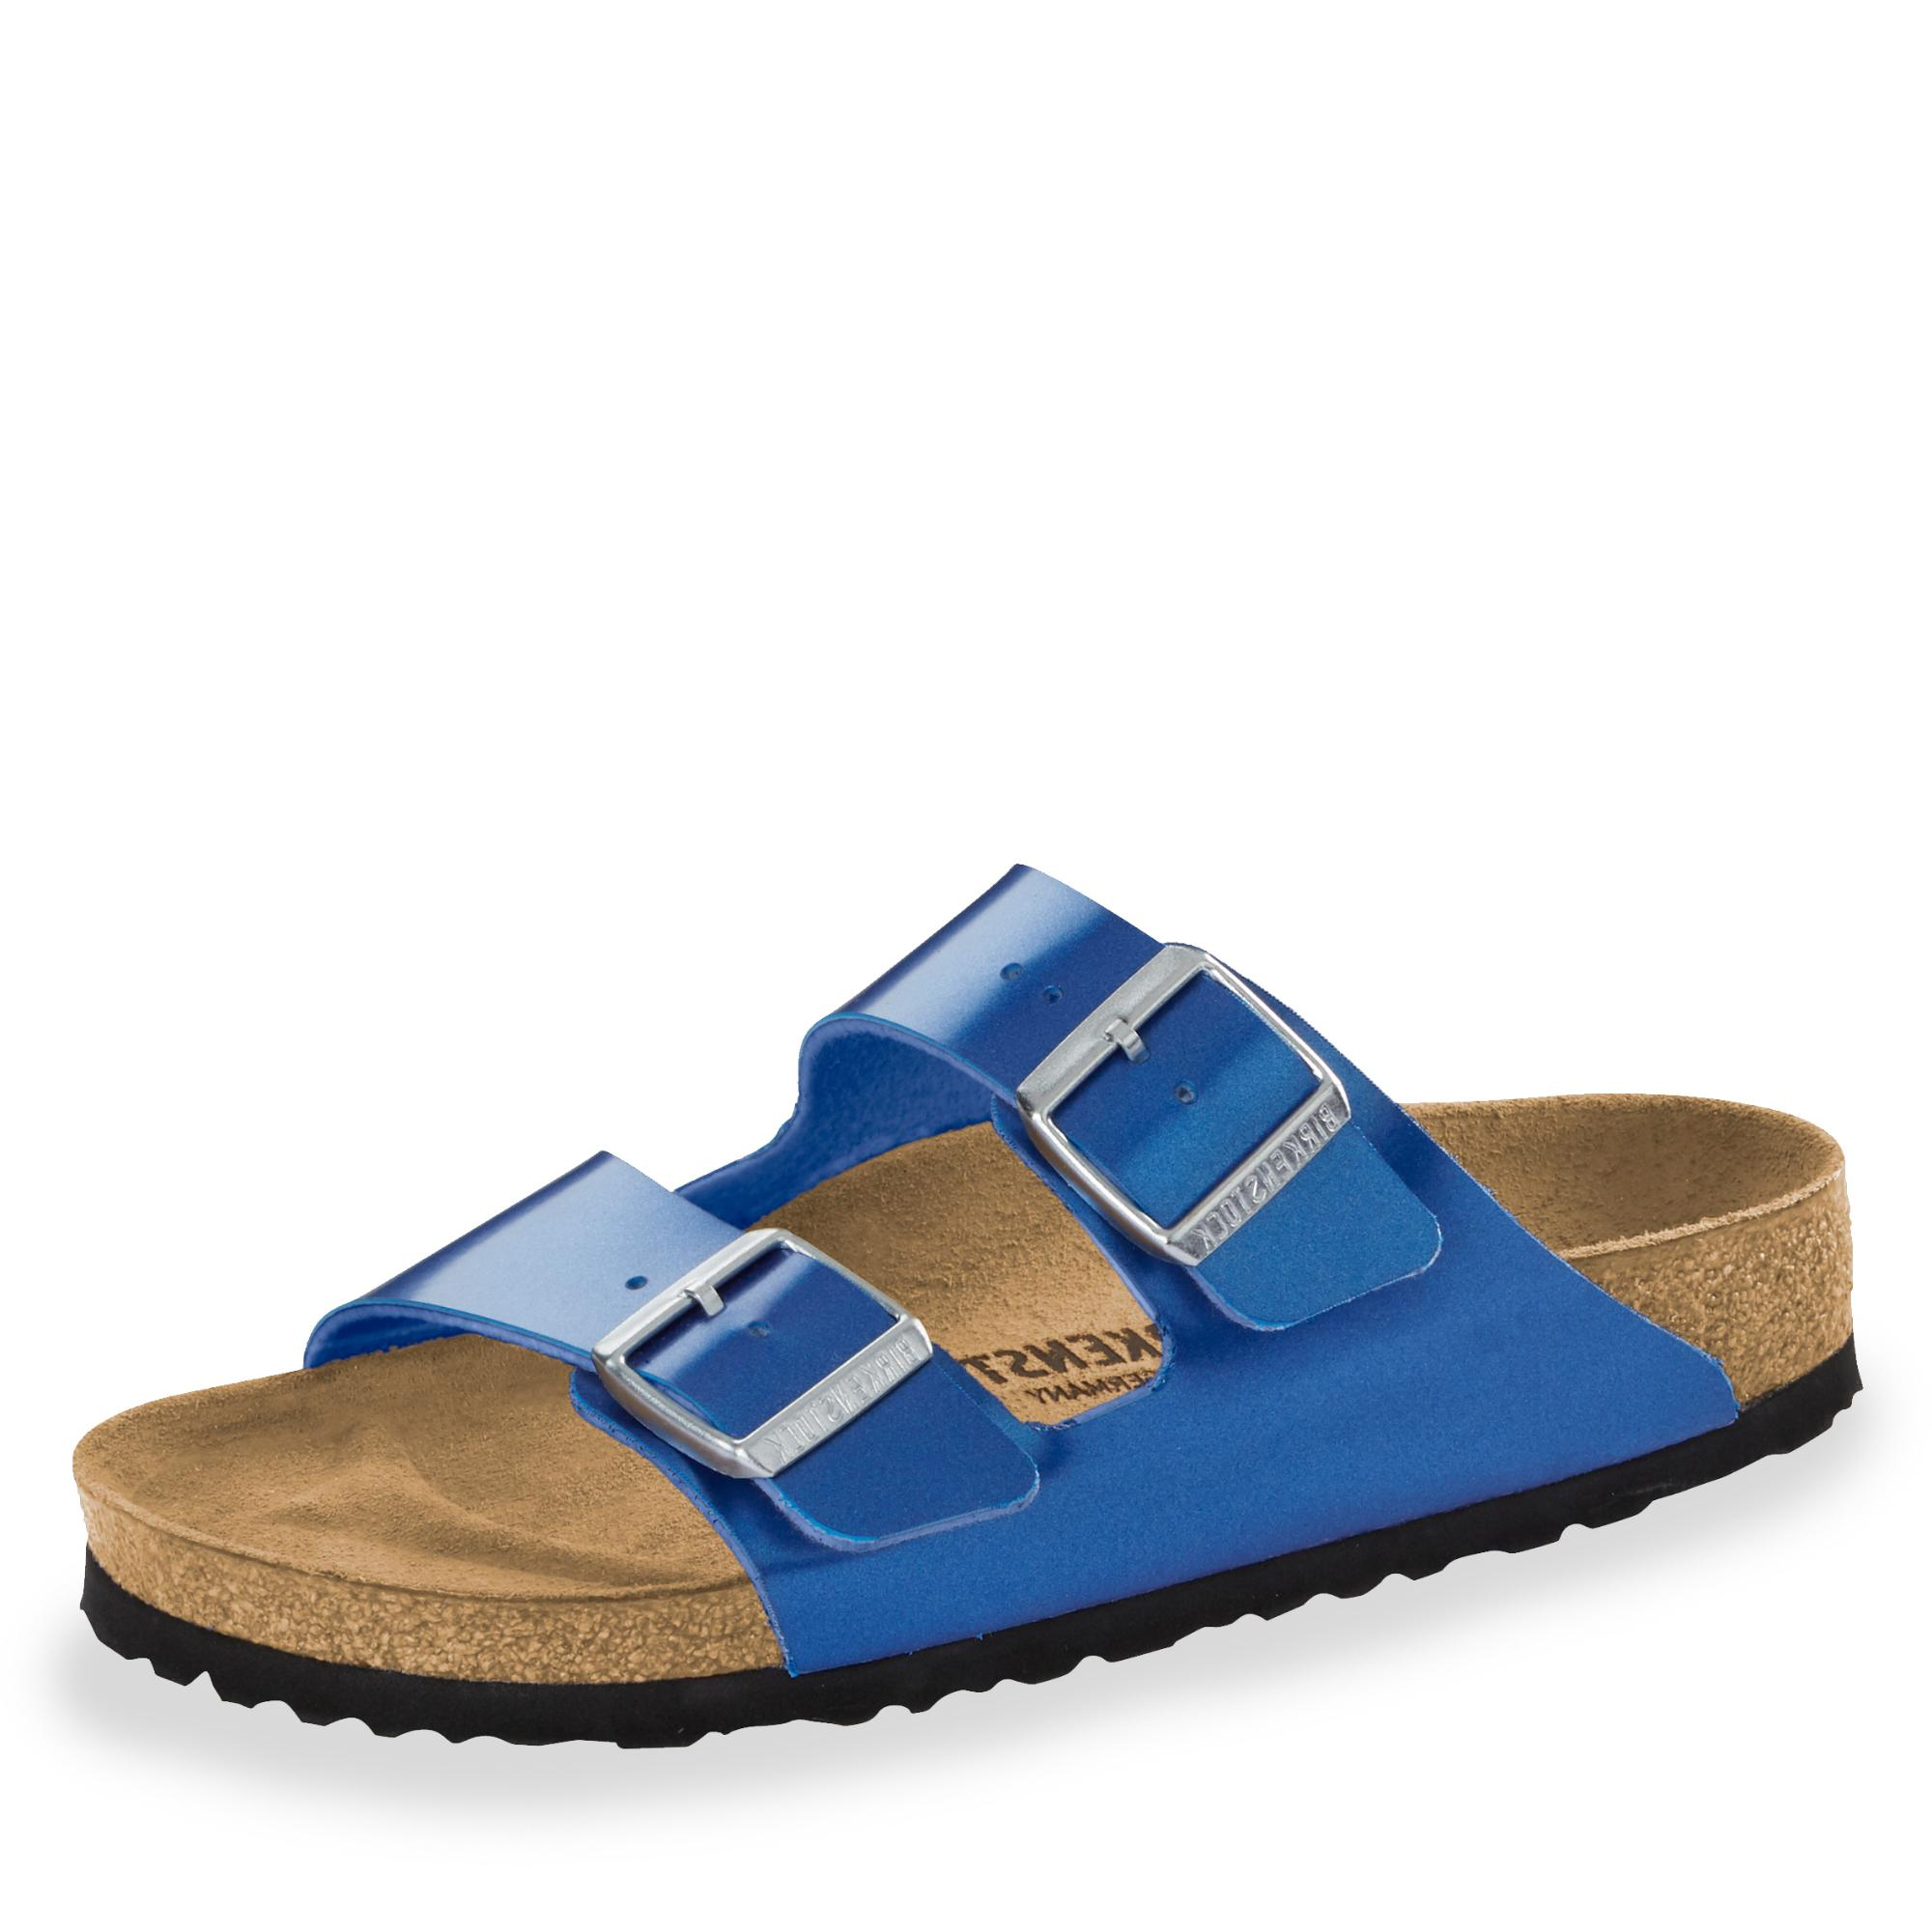 reputable site be139 95223 Birkenstock Arizona Pantolette